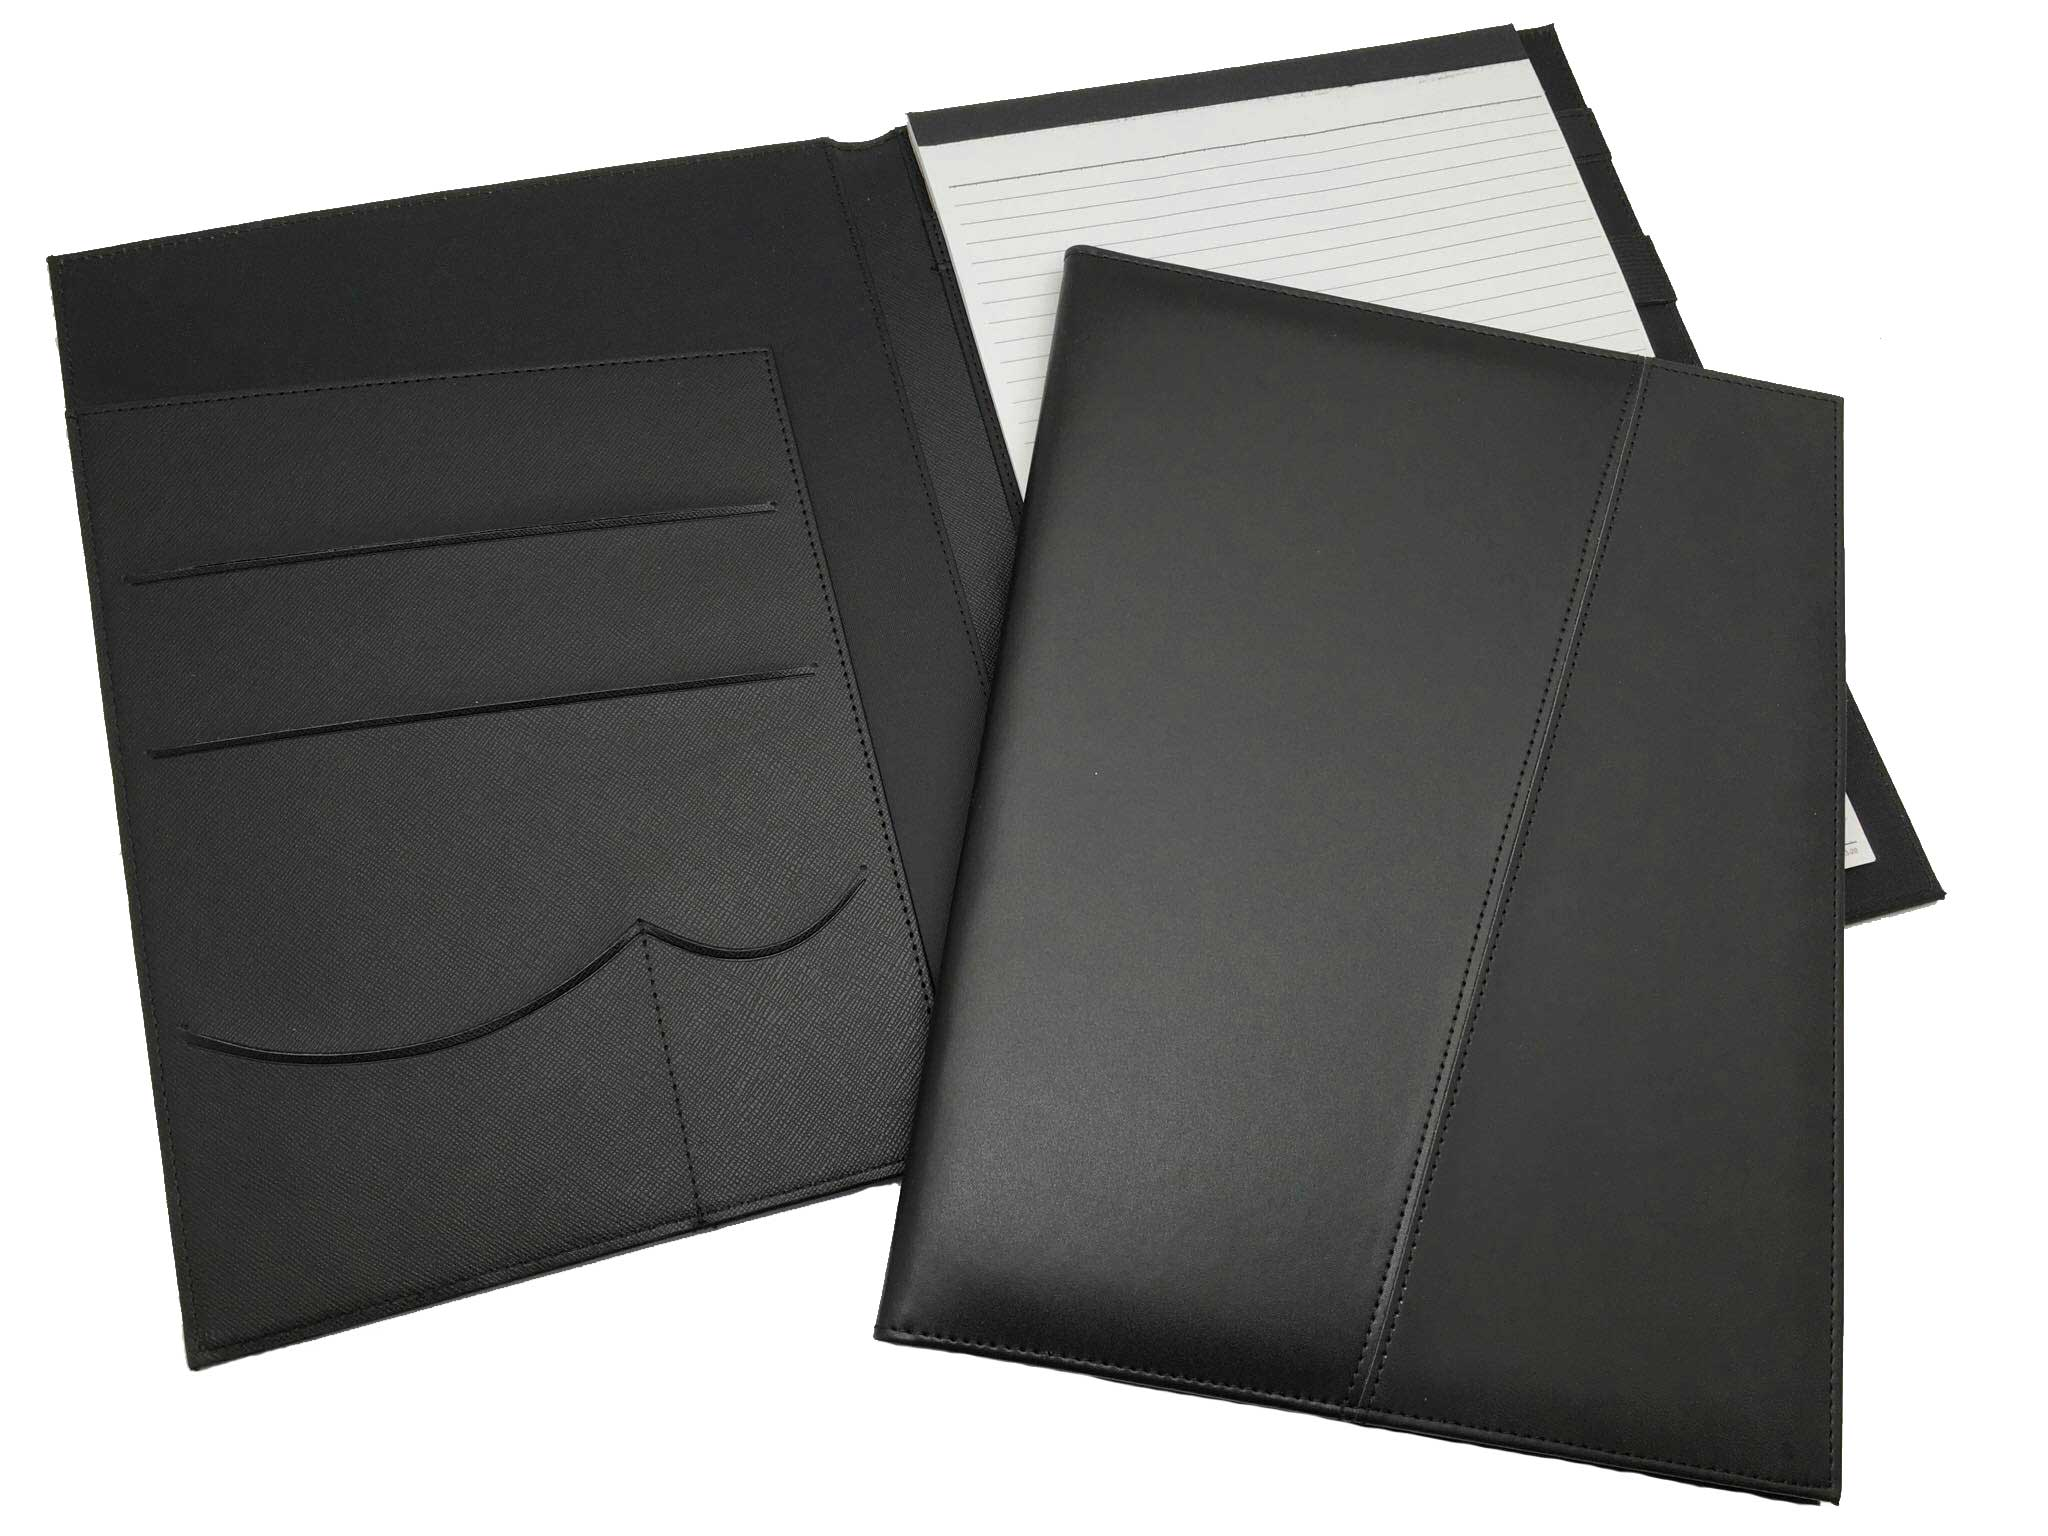 R'fillae A4 PU Leather Black Portfolio with Notepad